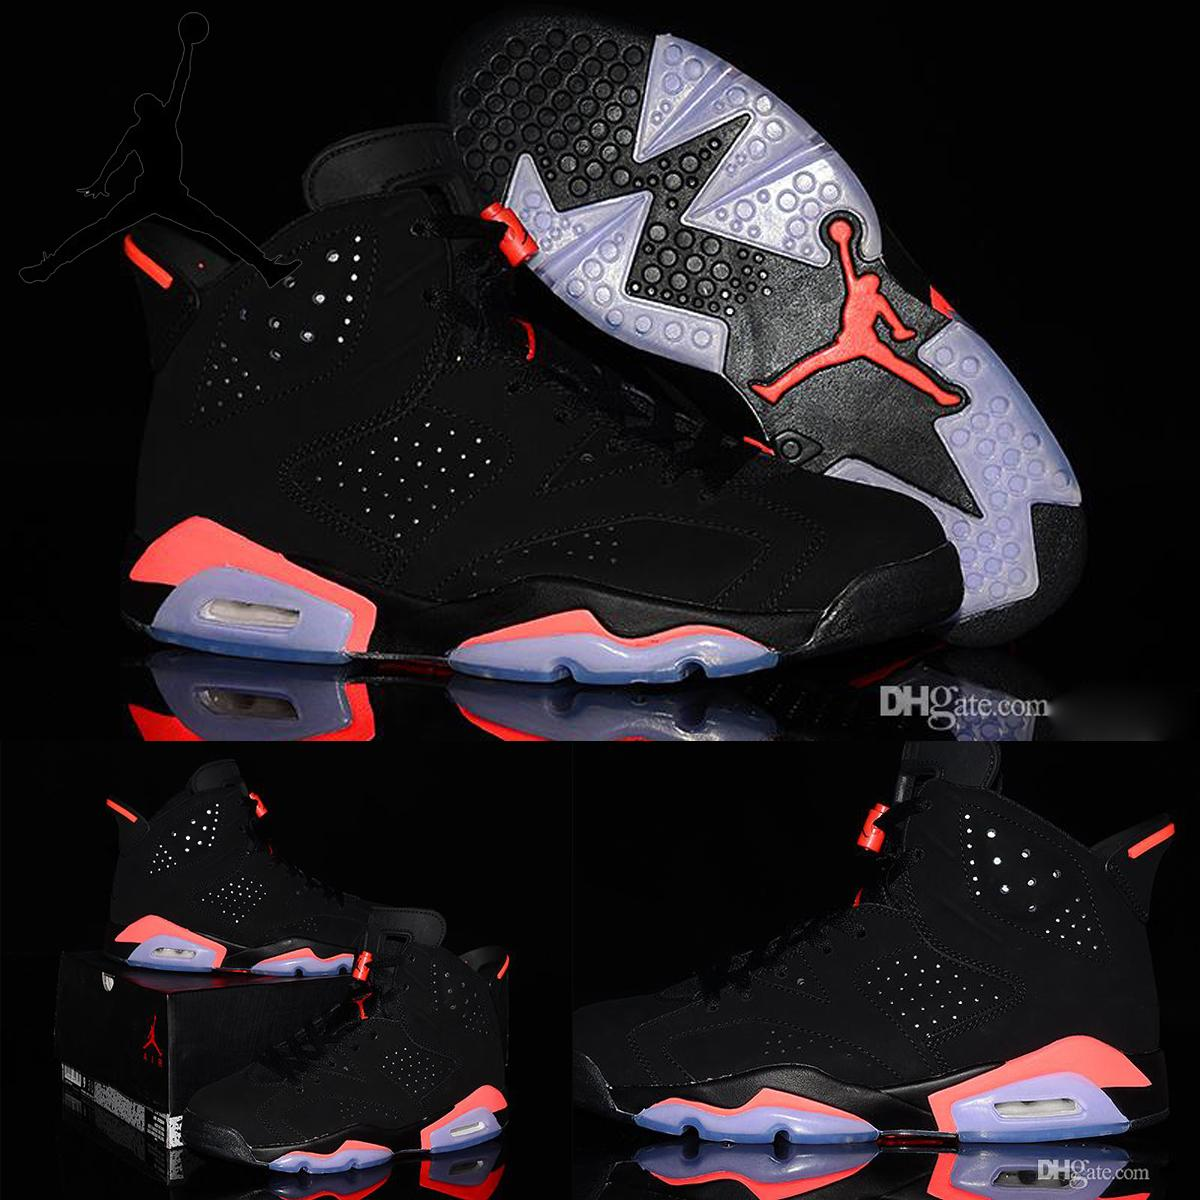 size 40 4c6a6 fcd03 Nike Air Jordan 6 Retro VI Black Infrared 23 Gs Mens Womens Basketball  Shoes,Original Nike AJ6 J6 Jordan6 Black Red For Men Women Sneakers  Basketball ...